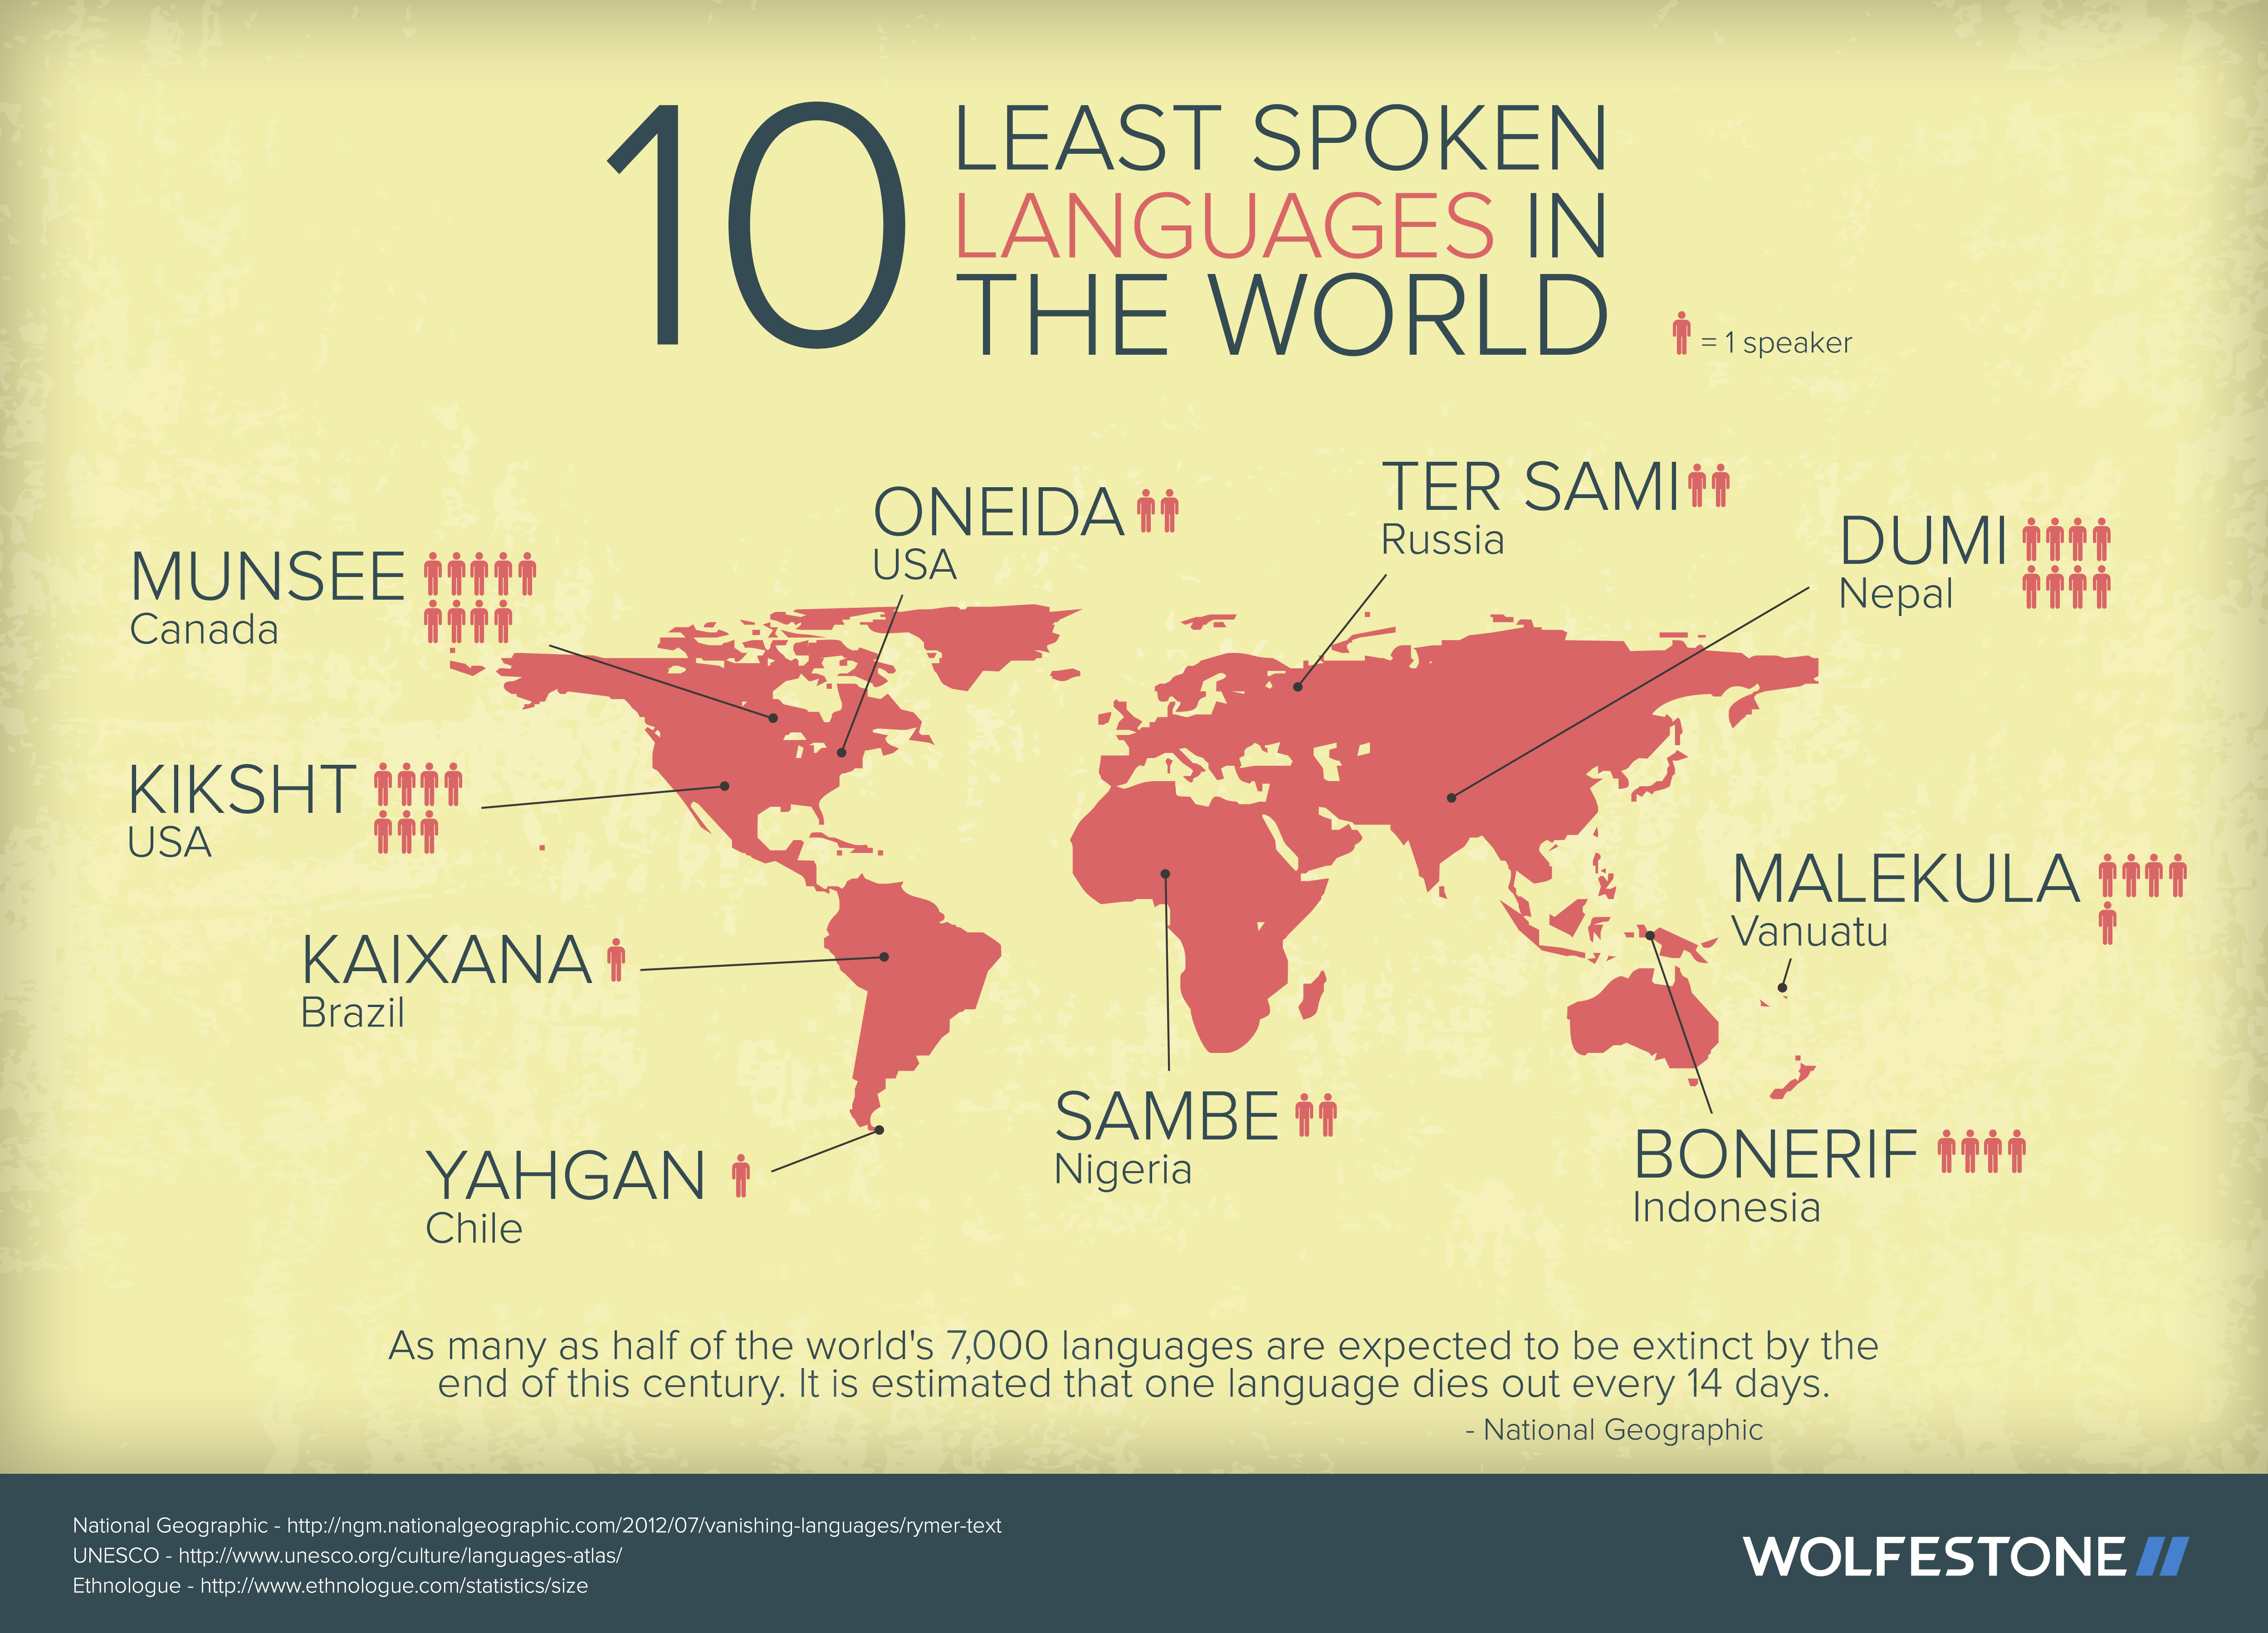 INFOGRAPHIC Least Spoken Languages In The World - Languages spoken in each country of the world